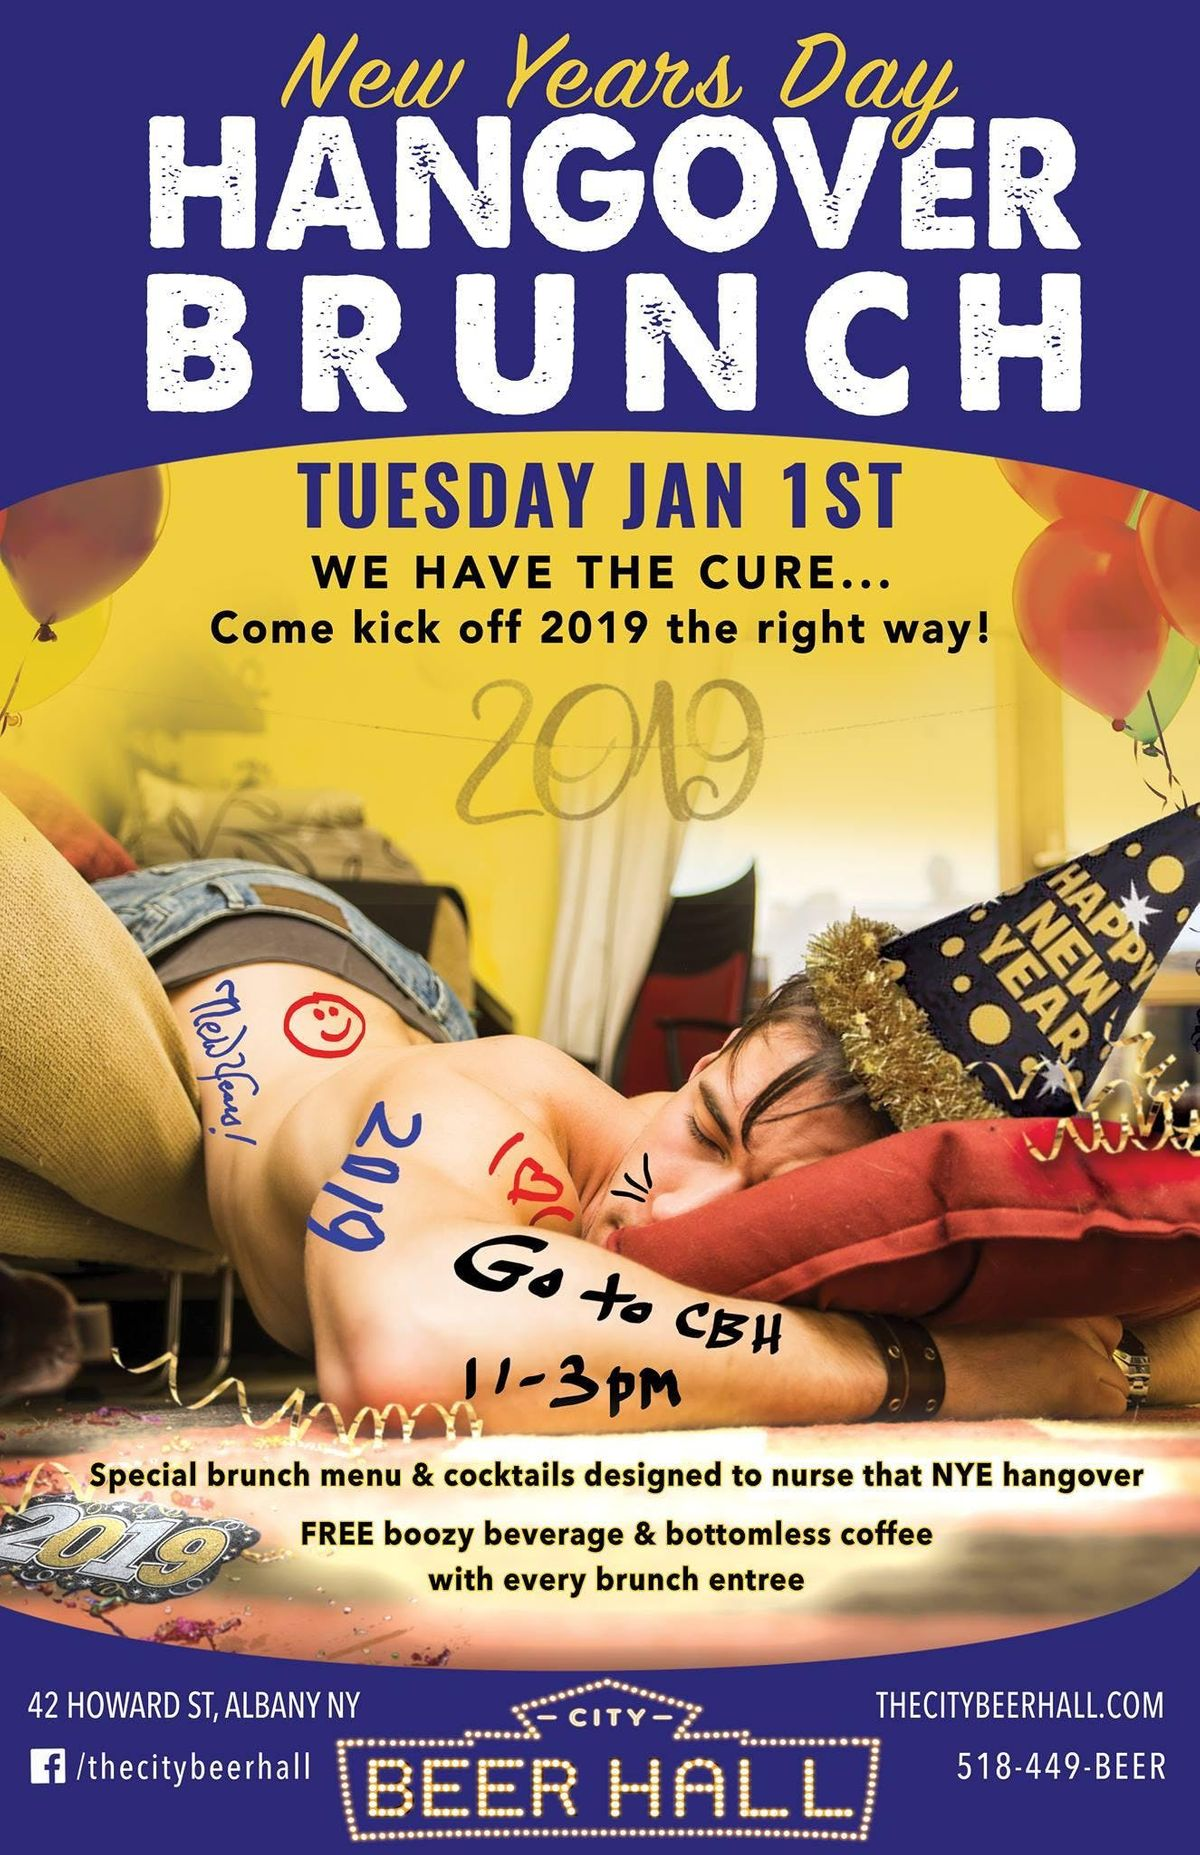 Hangover Brunch - New Years Day